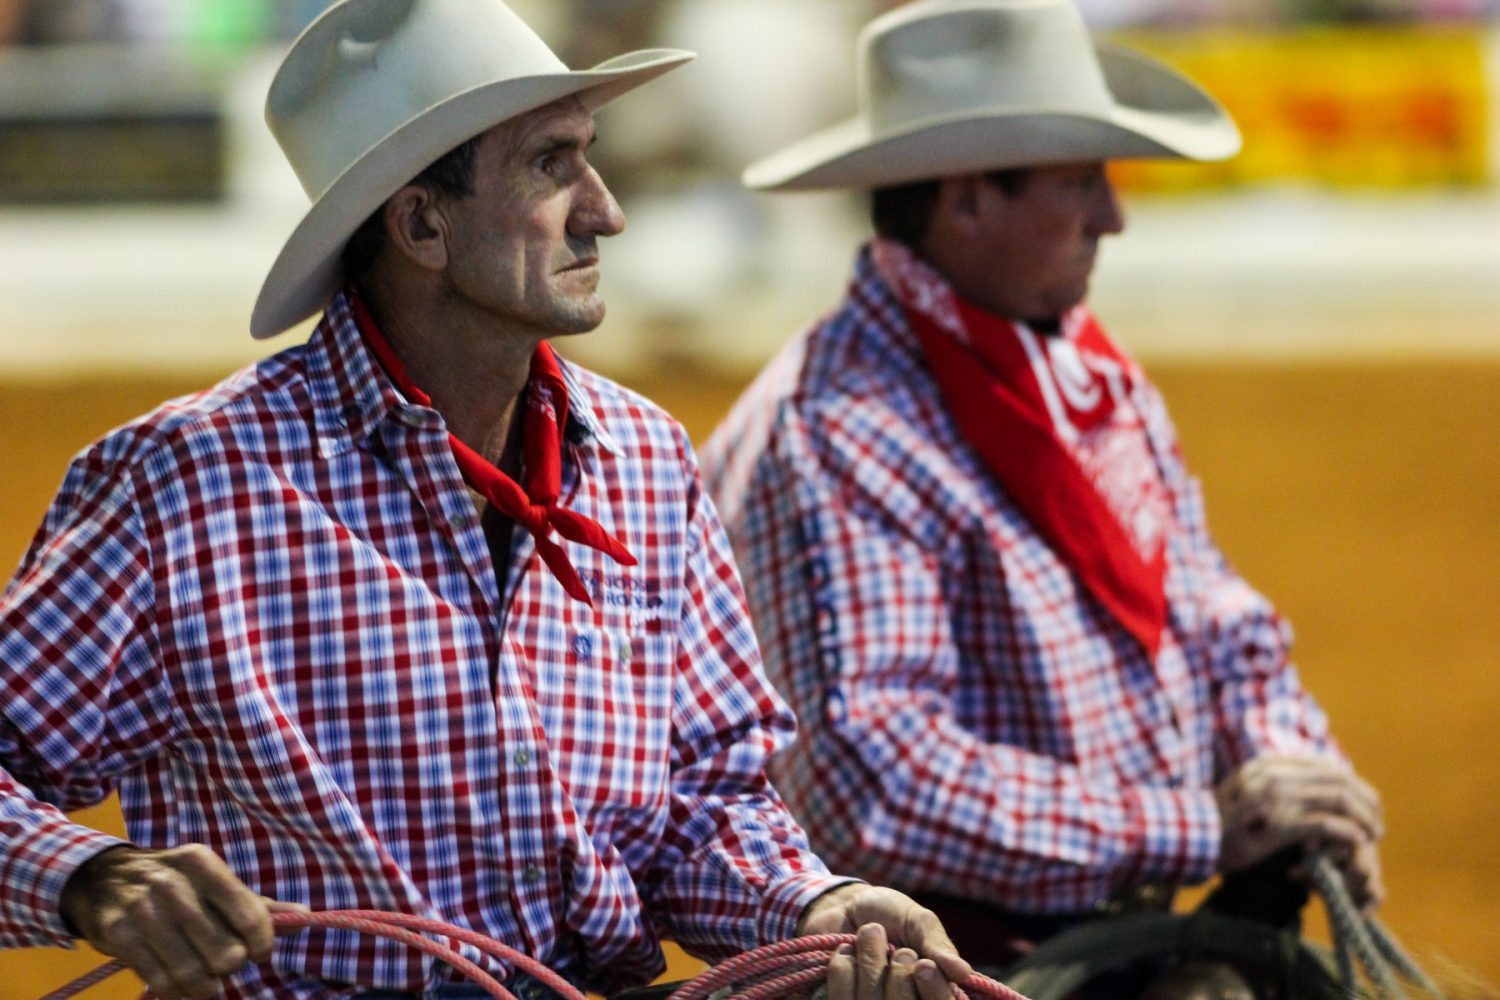 Two cowboys ride through the Southeastern Livestock Pavilion at the Ocala Pro Rodeo on Friday night, March 21, 2014.